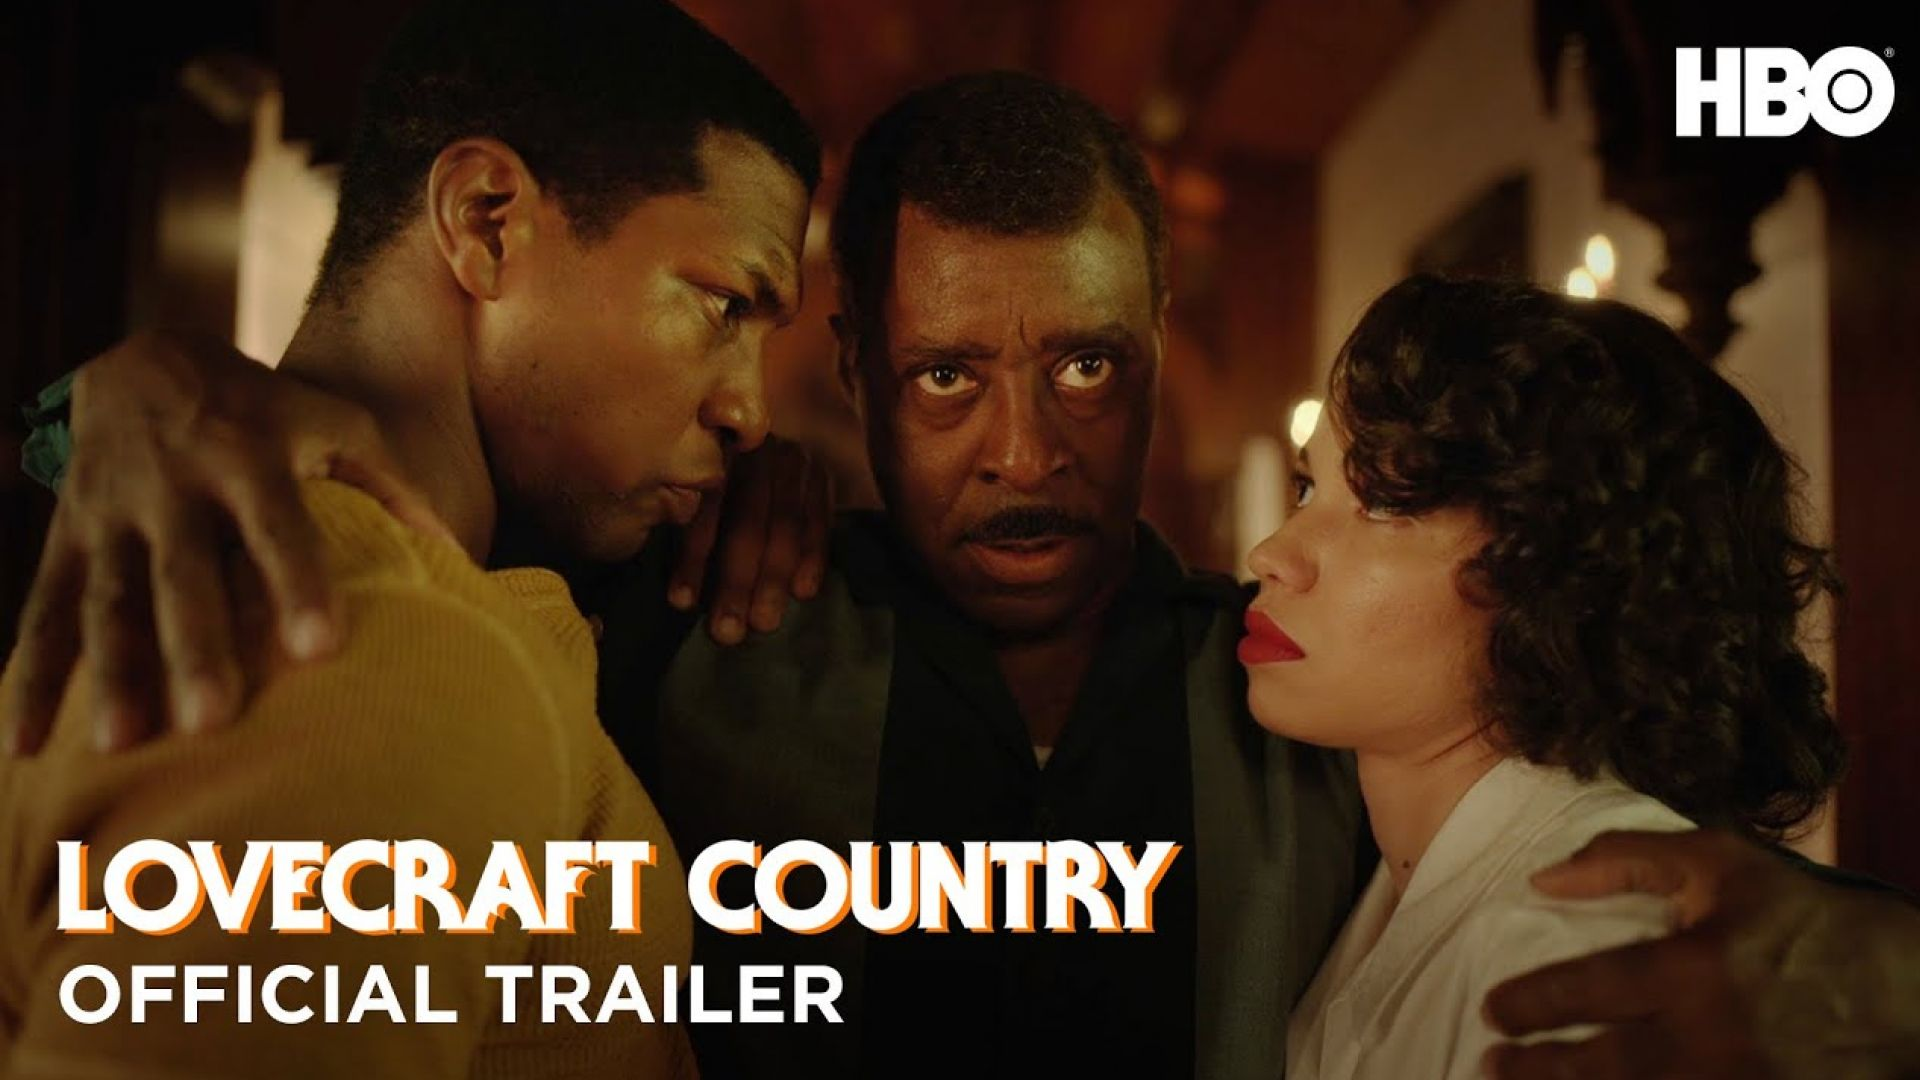 'Lovecraft Country' Trailer (HBO)